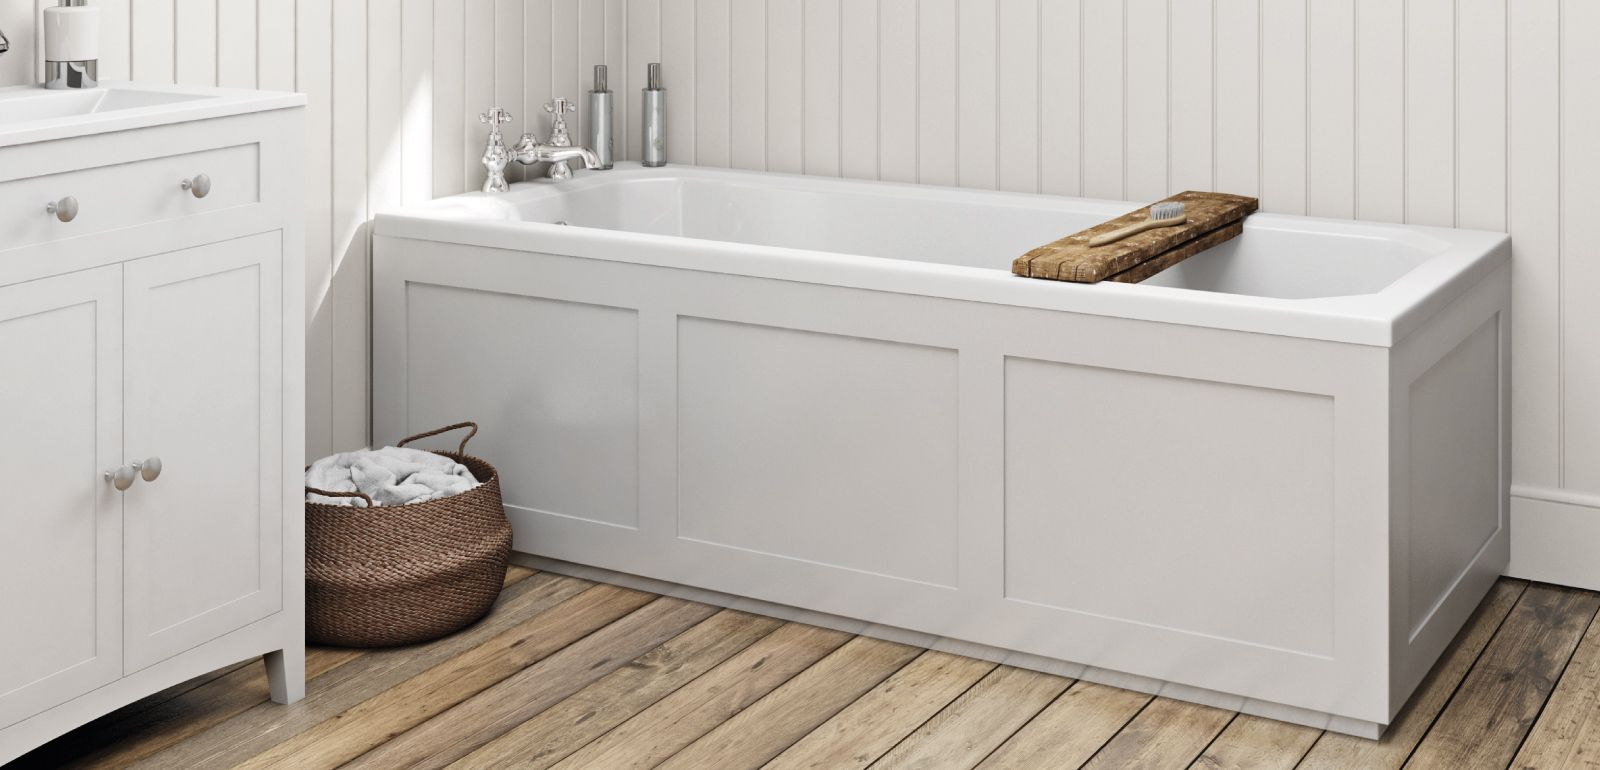 How to fit a wooden bath panel | Pinterest | Bath panel, Tiny ...